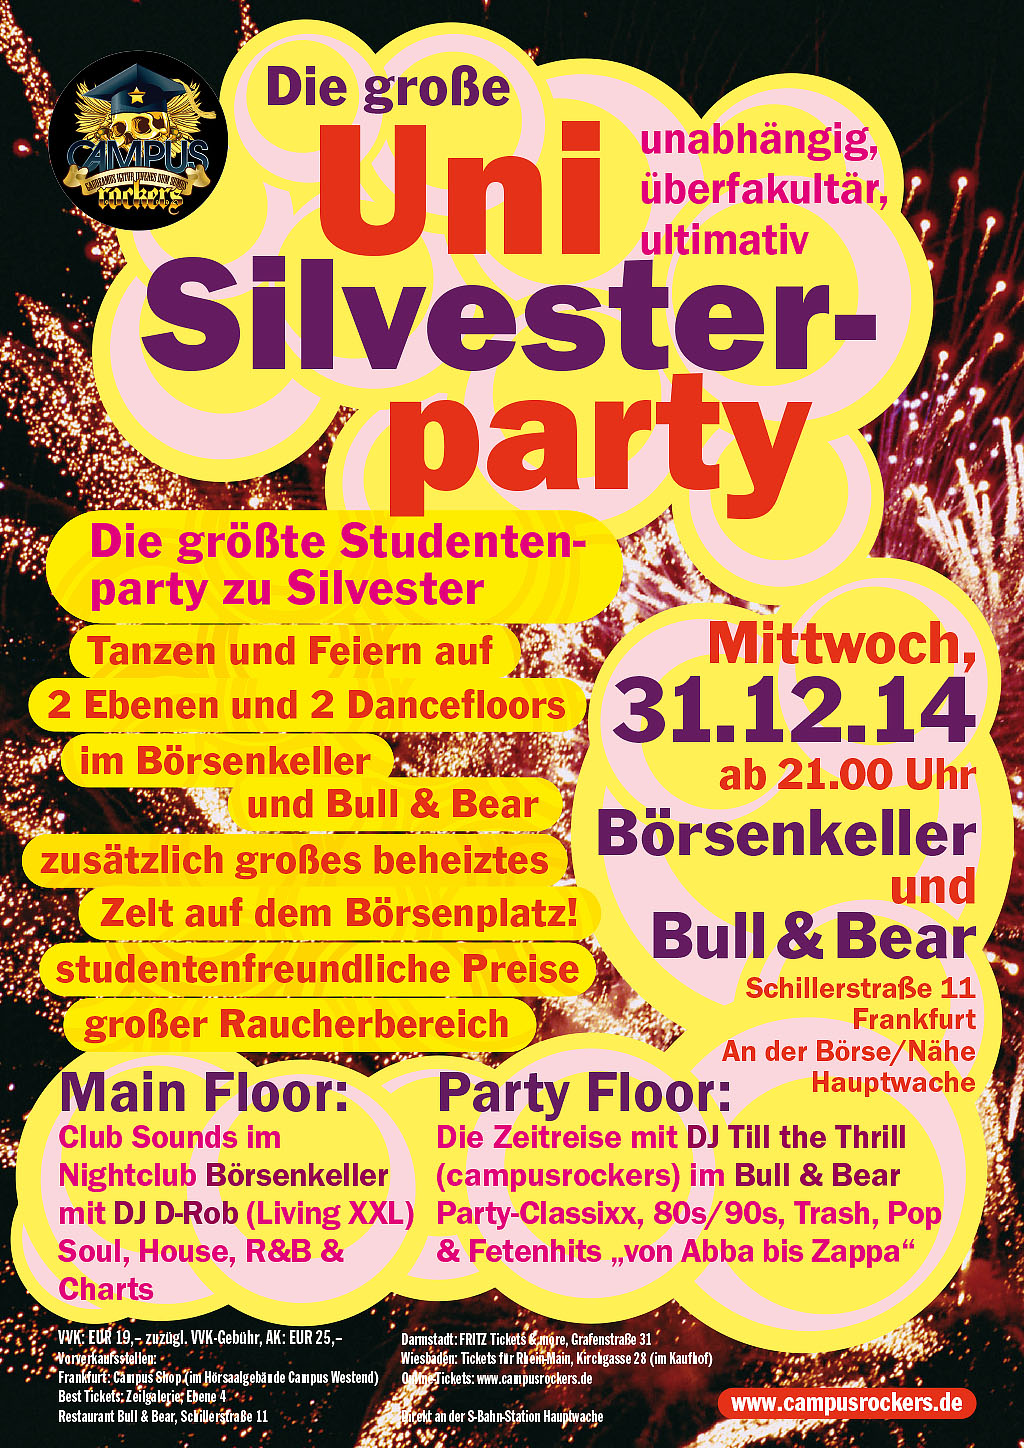 Silvester single party 2013 karlsruhe Single Party Karlsruhe 2014. Silvester Single Party 2013 Karlsruhe ...